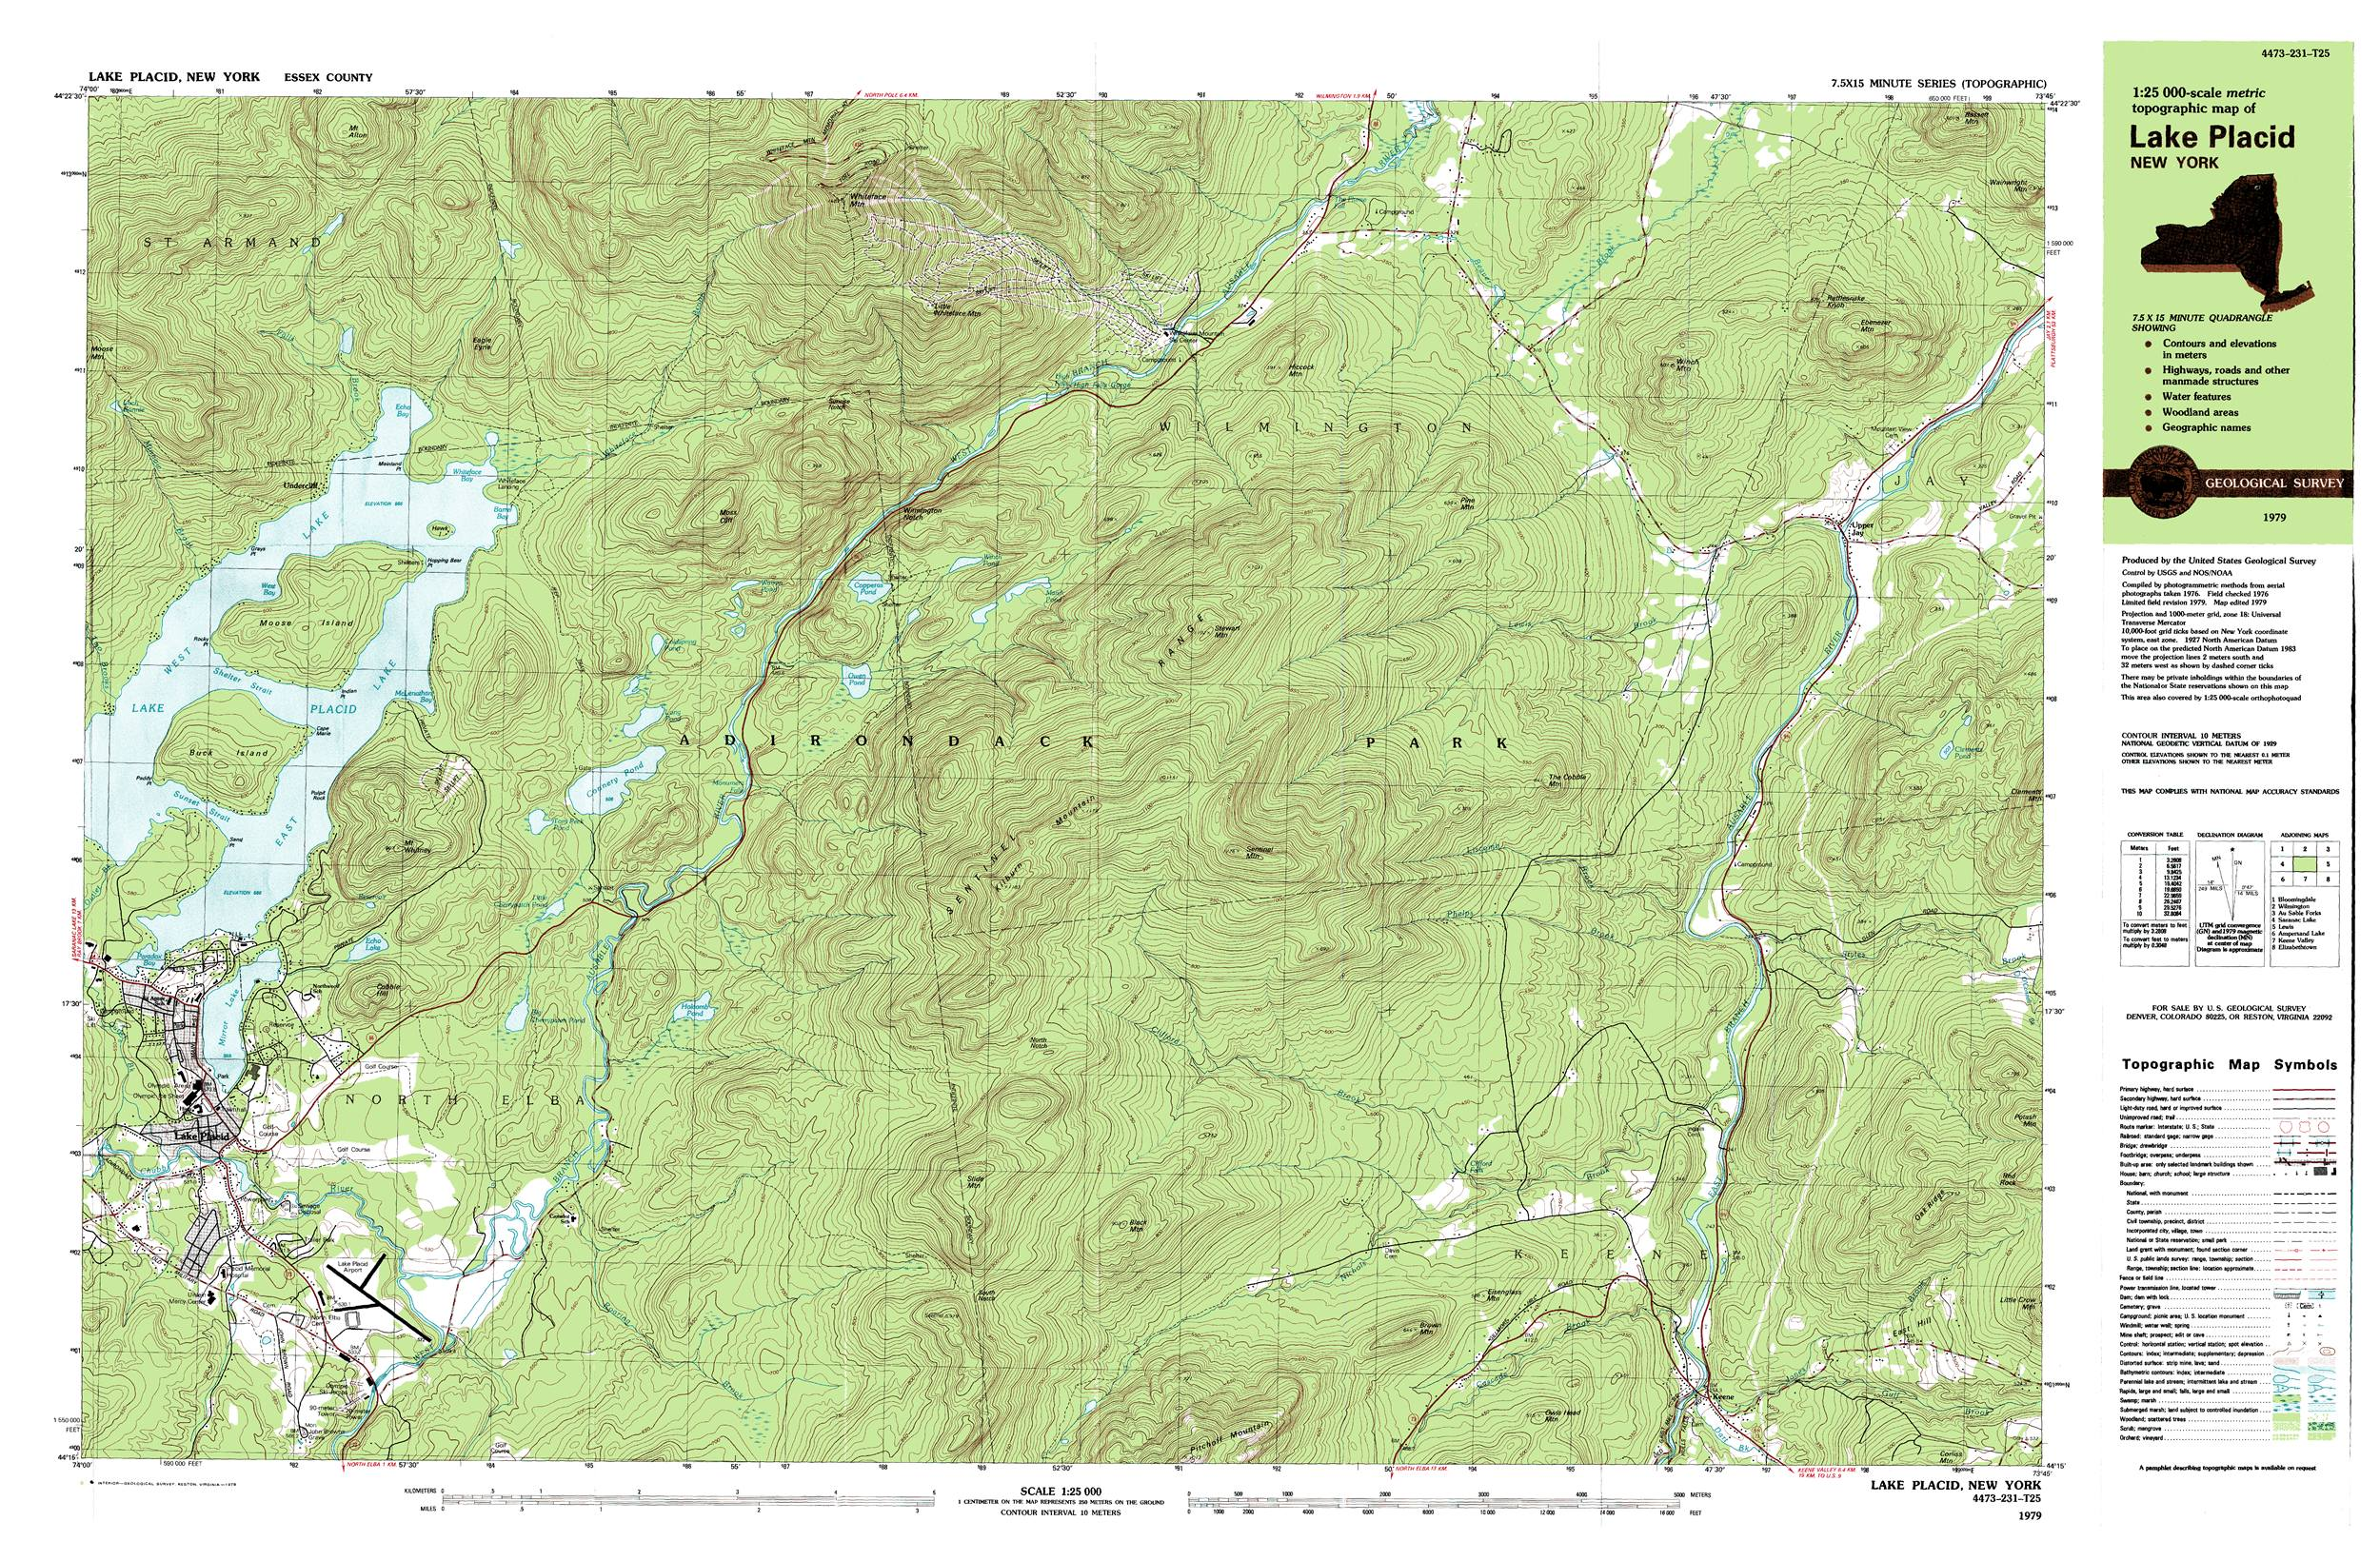 Lake Placid - Wilmington - Whiteface Mt. Topographic Map